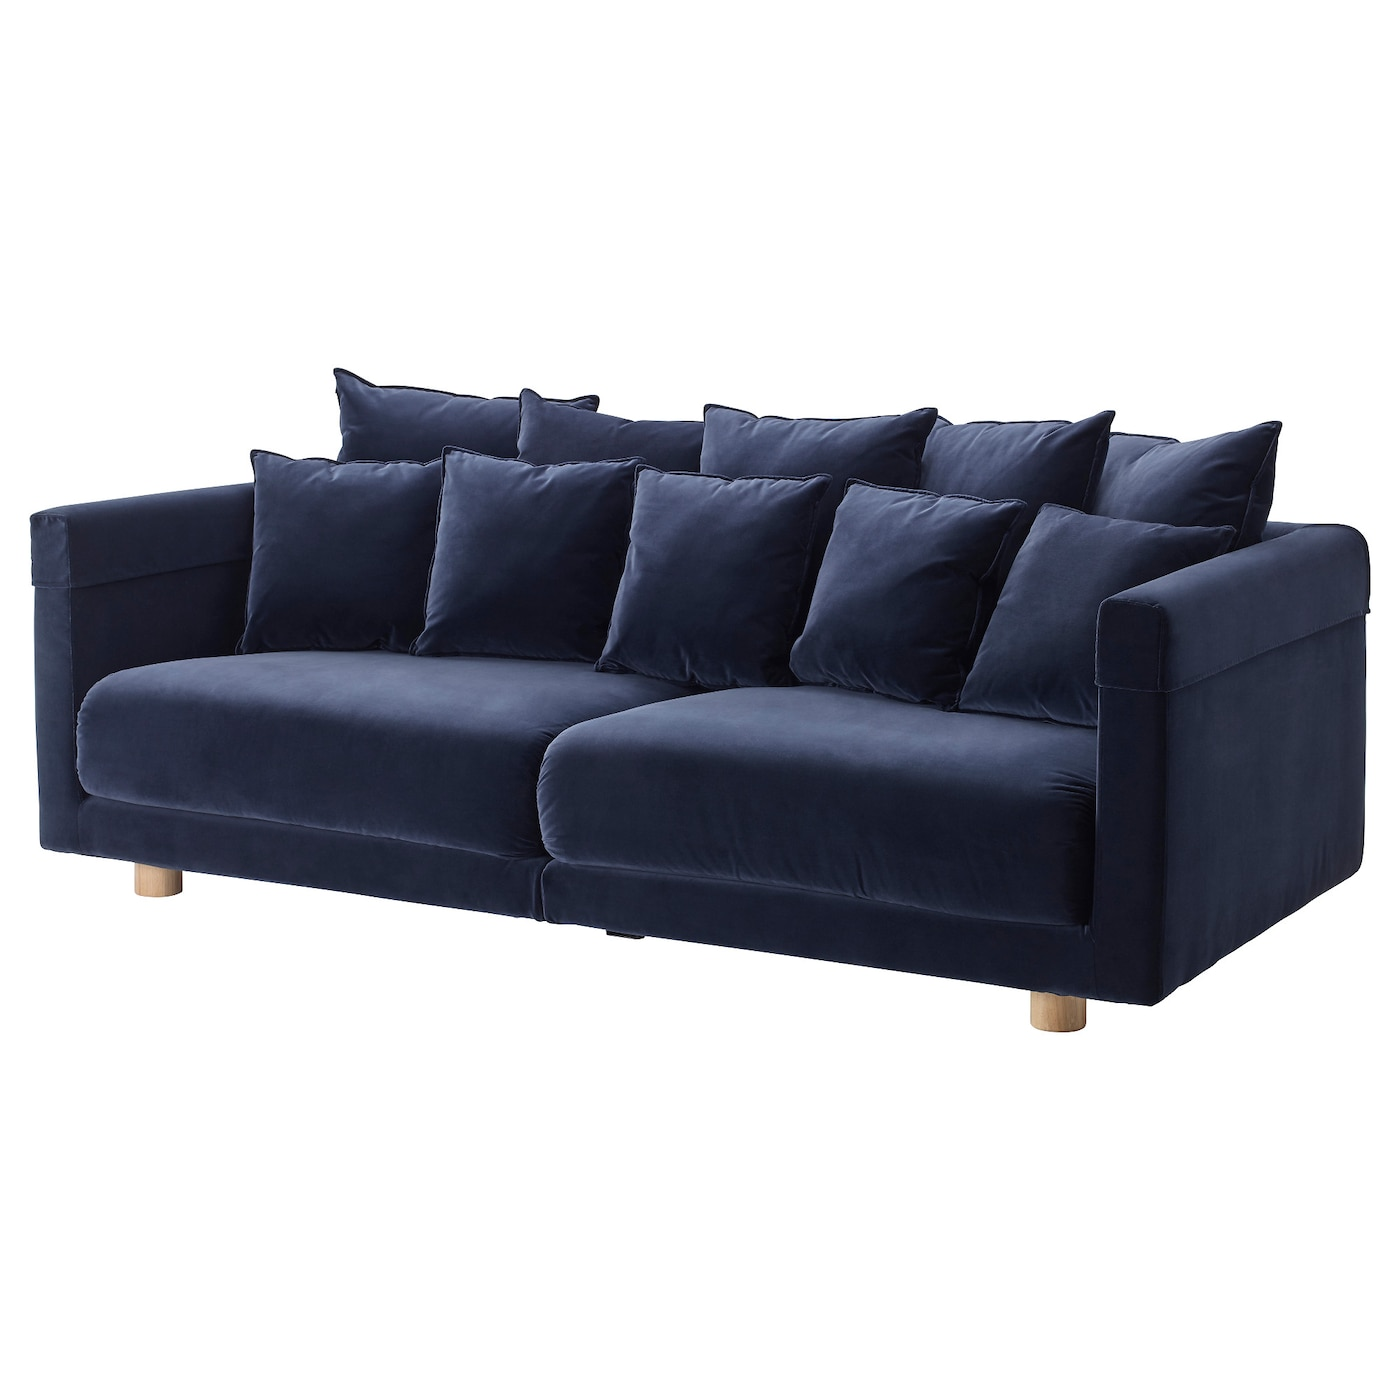 Stockholm 2017 Three Seat Sofa Sandbacka Dark Blue Ikea